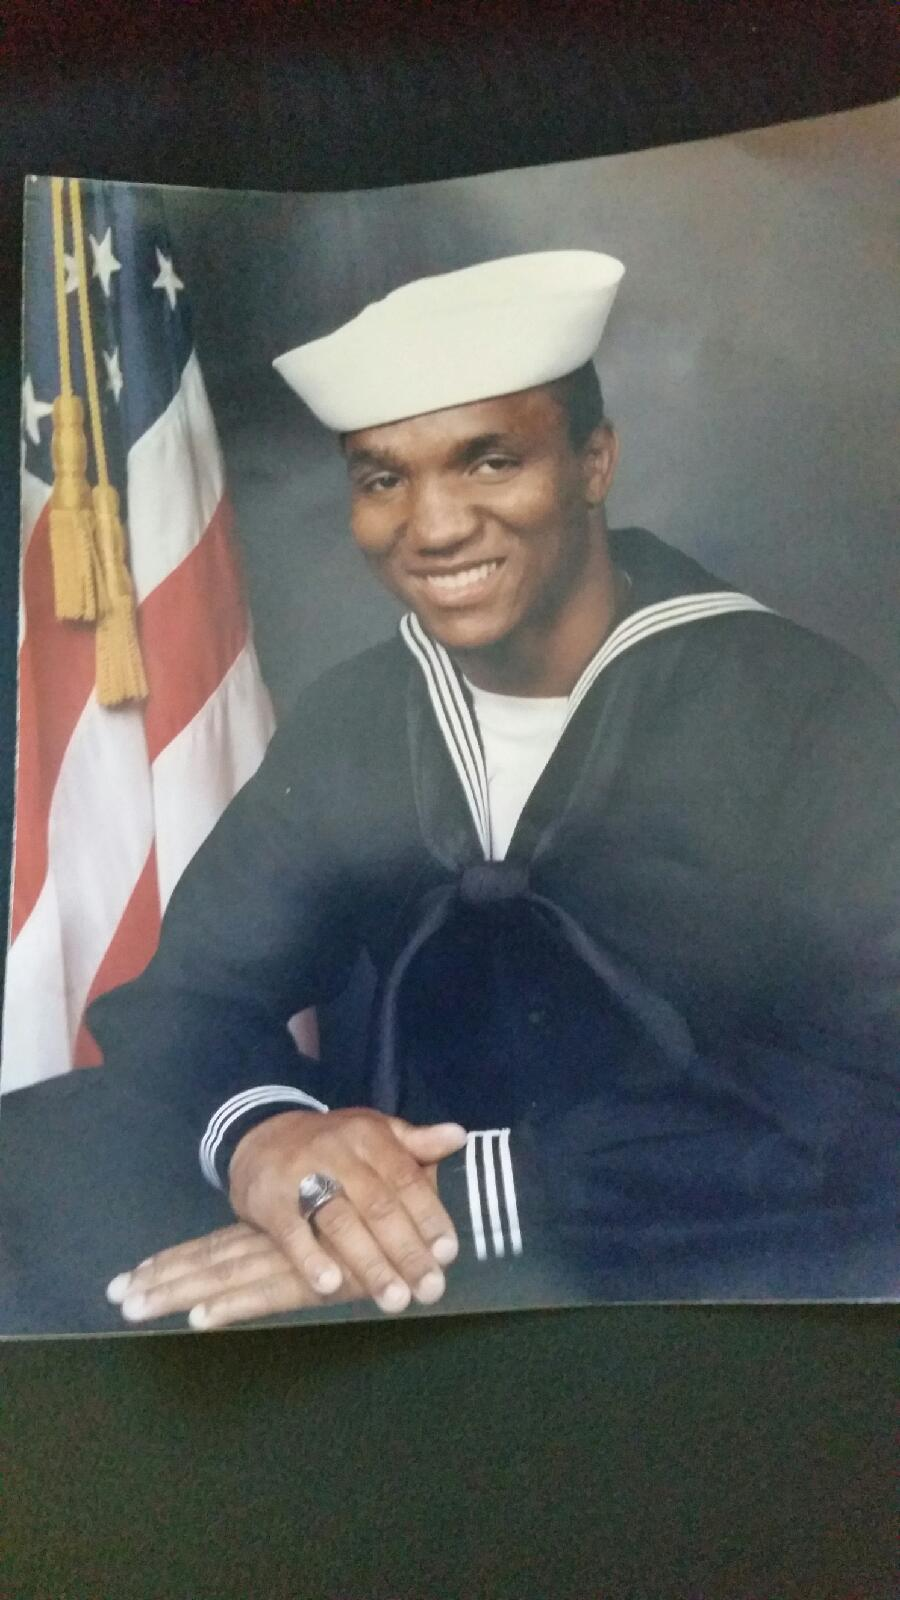 Sailor Nathaniel Jones Jr. is among 1,500 black military veterans to be honored with a new memorial. (Provided by Jones family)